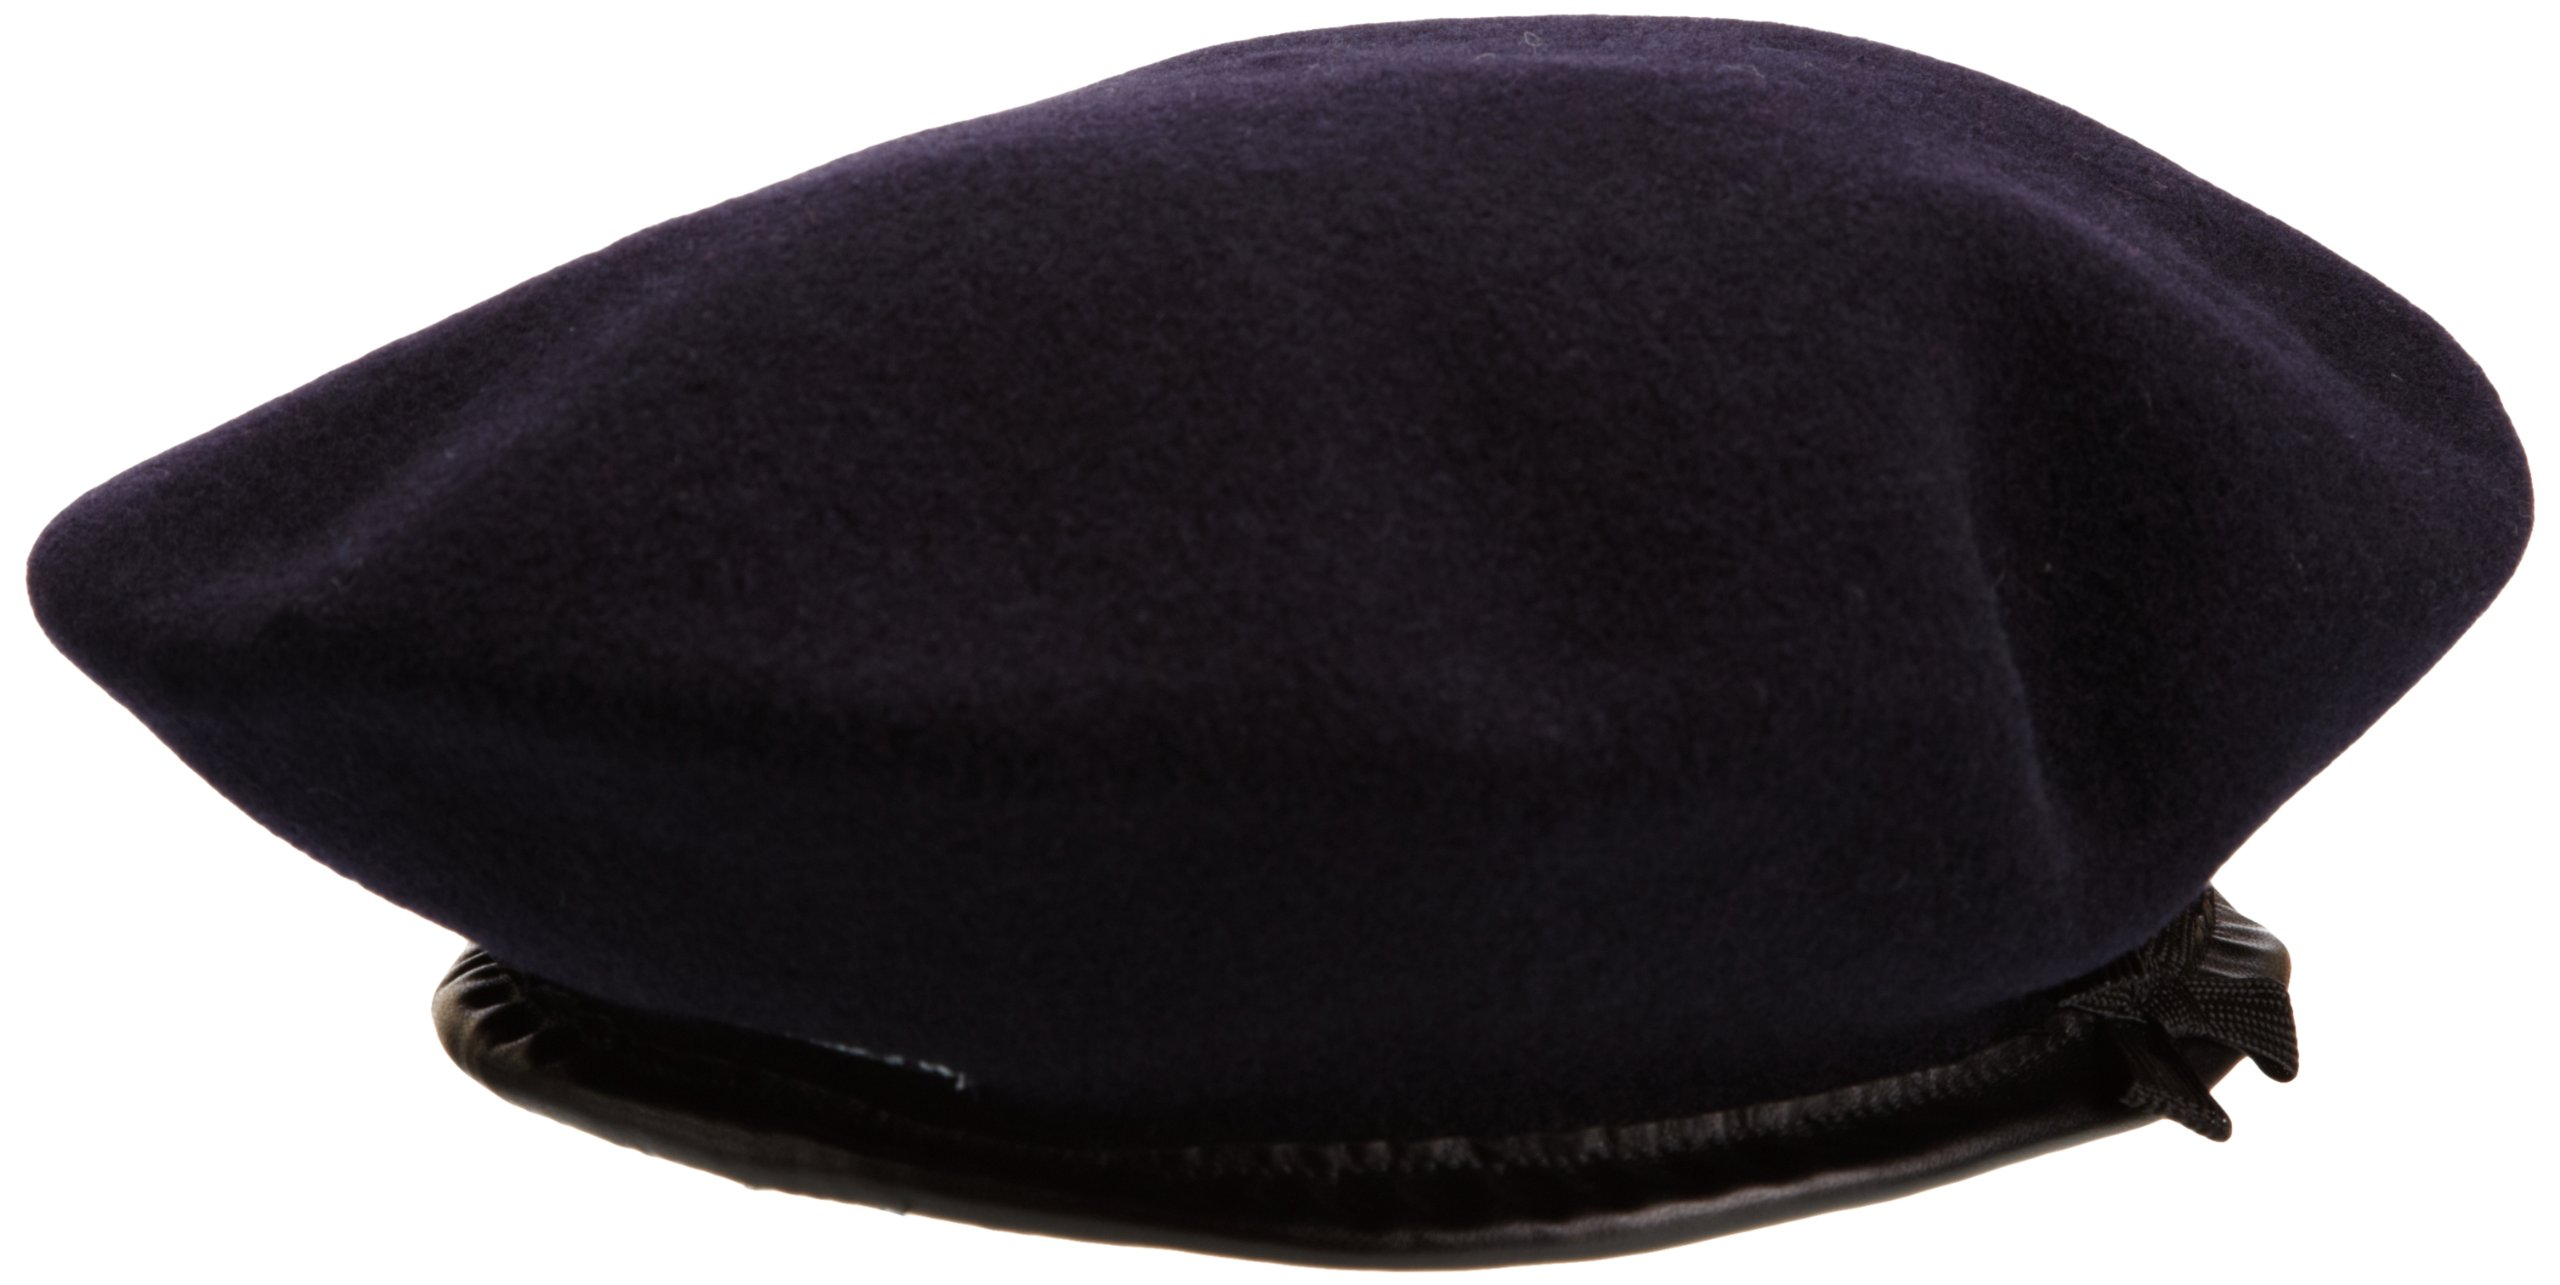 Kangol Classic Monty Beret, The Original Beret, Dark Blue (Medium)